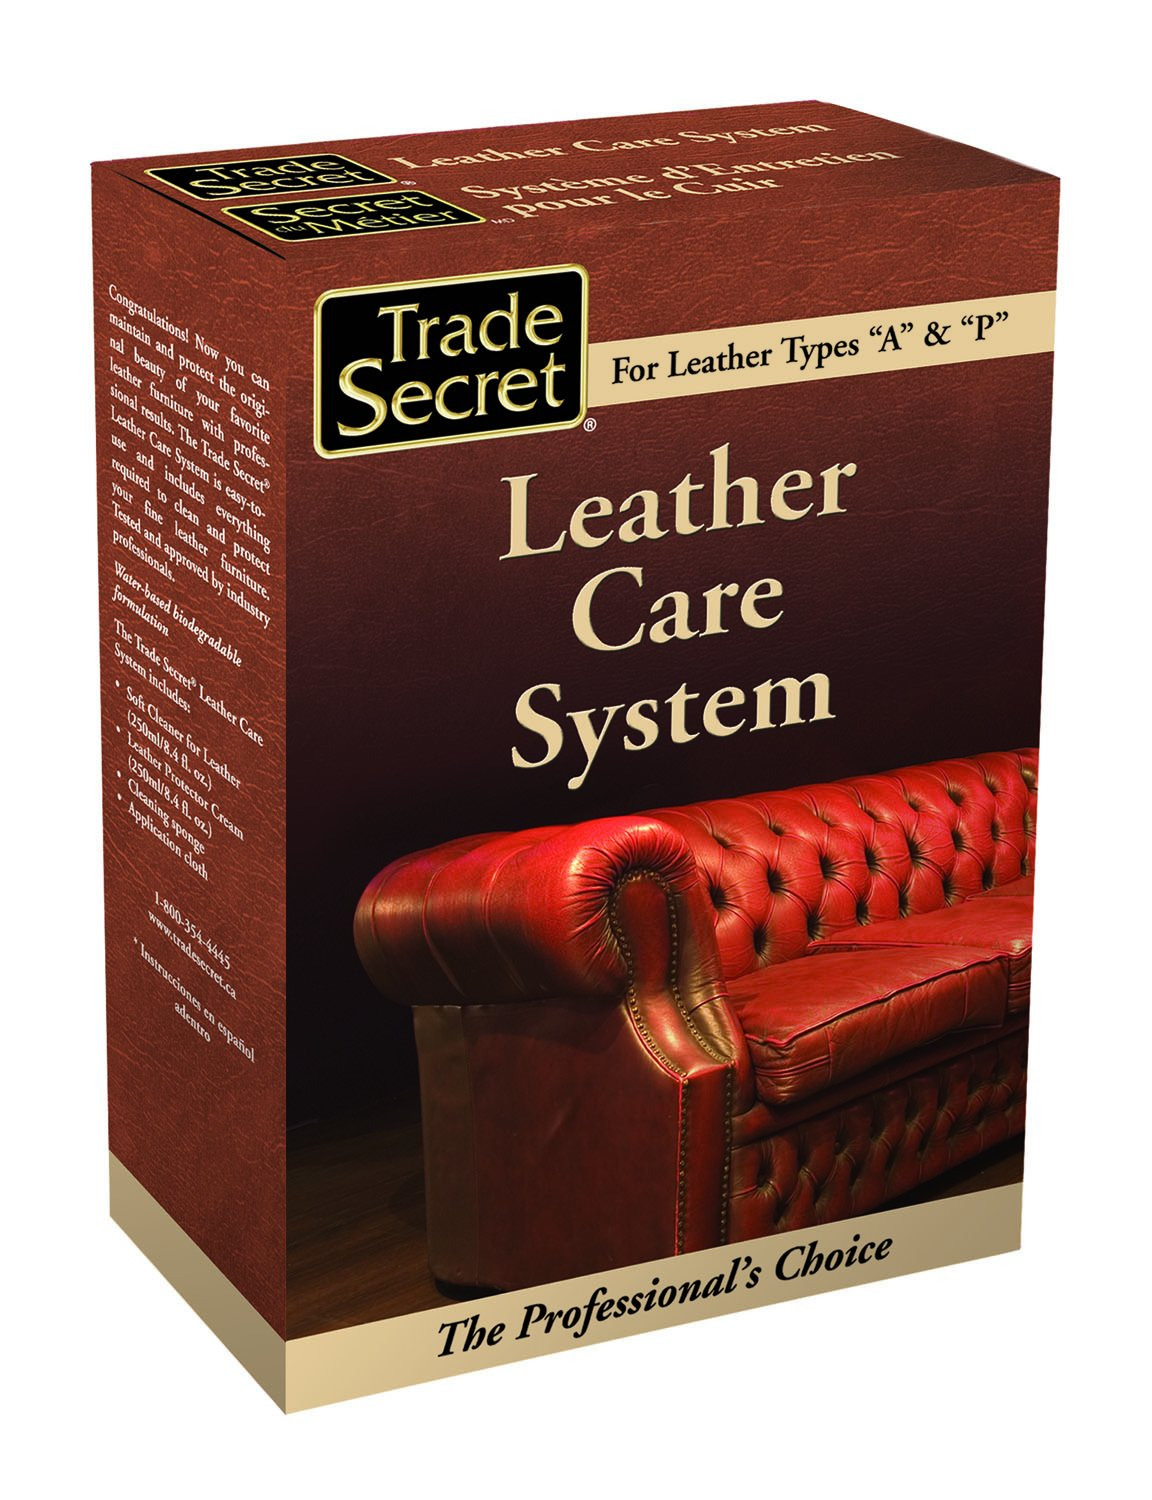 Trade Secret Leather Care System by Trade Secret